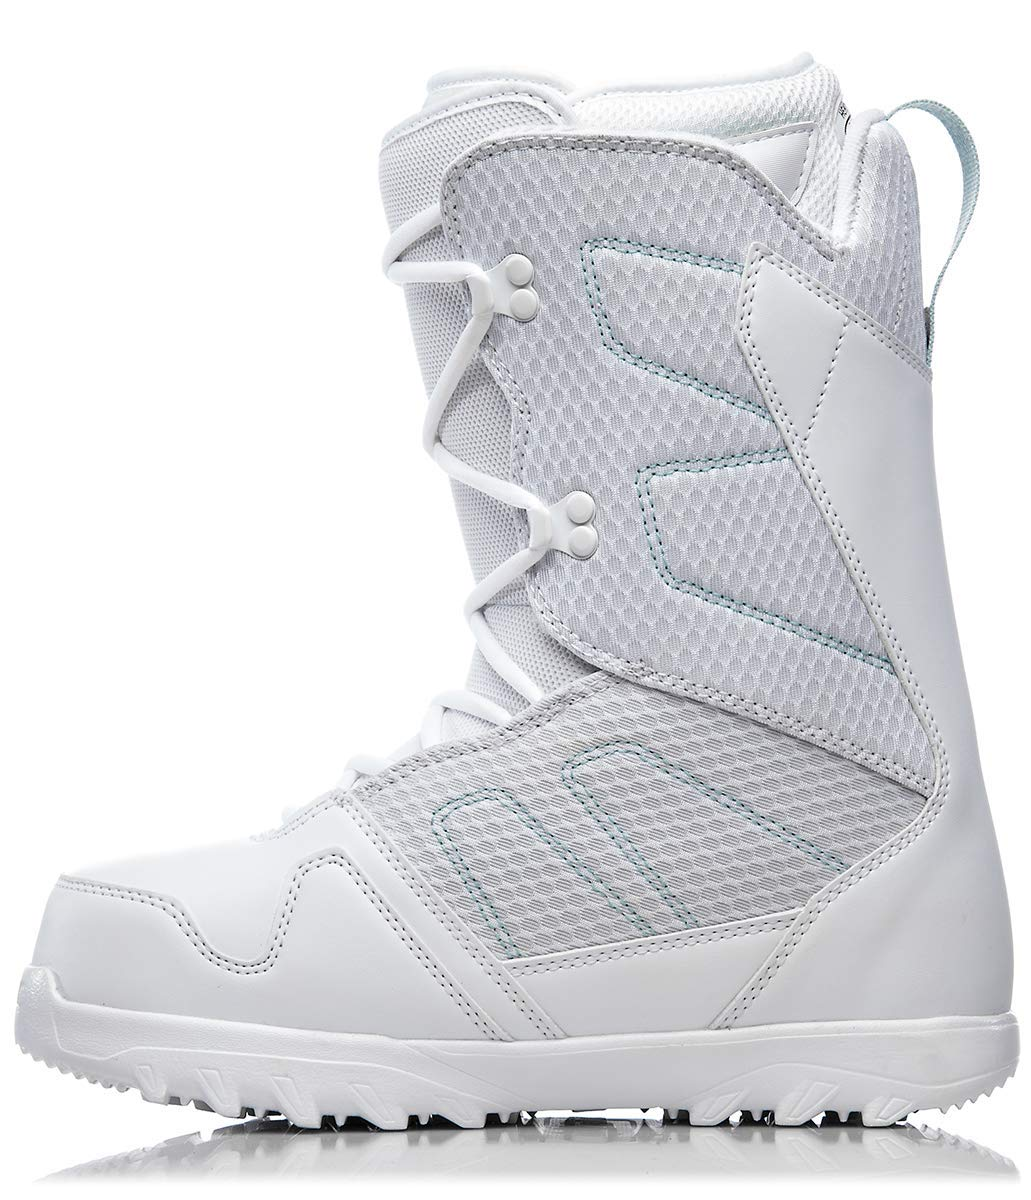 ThirtyTwo Exit Women's '18 Snowboard Boots, White, 9 by ThirtyTwo